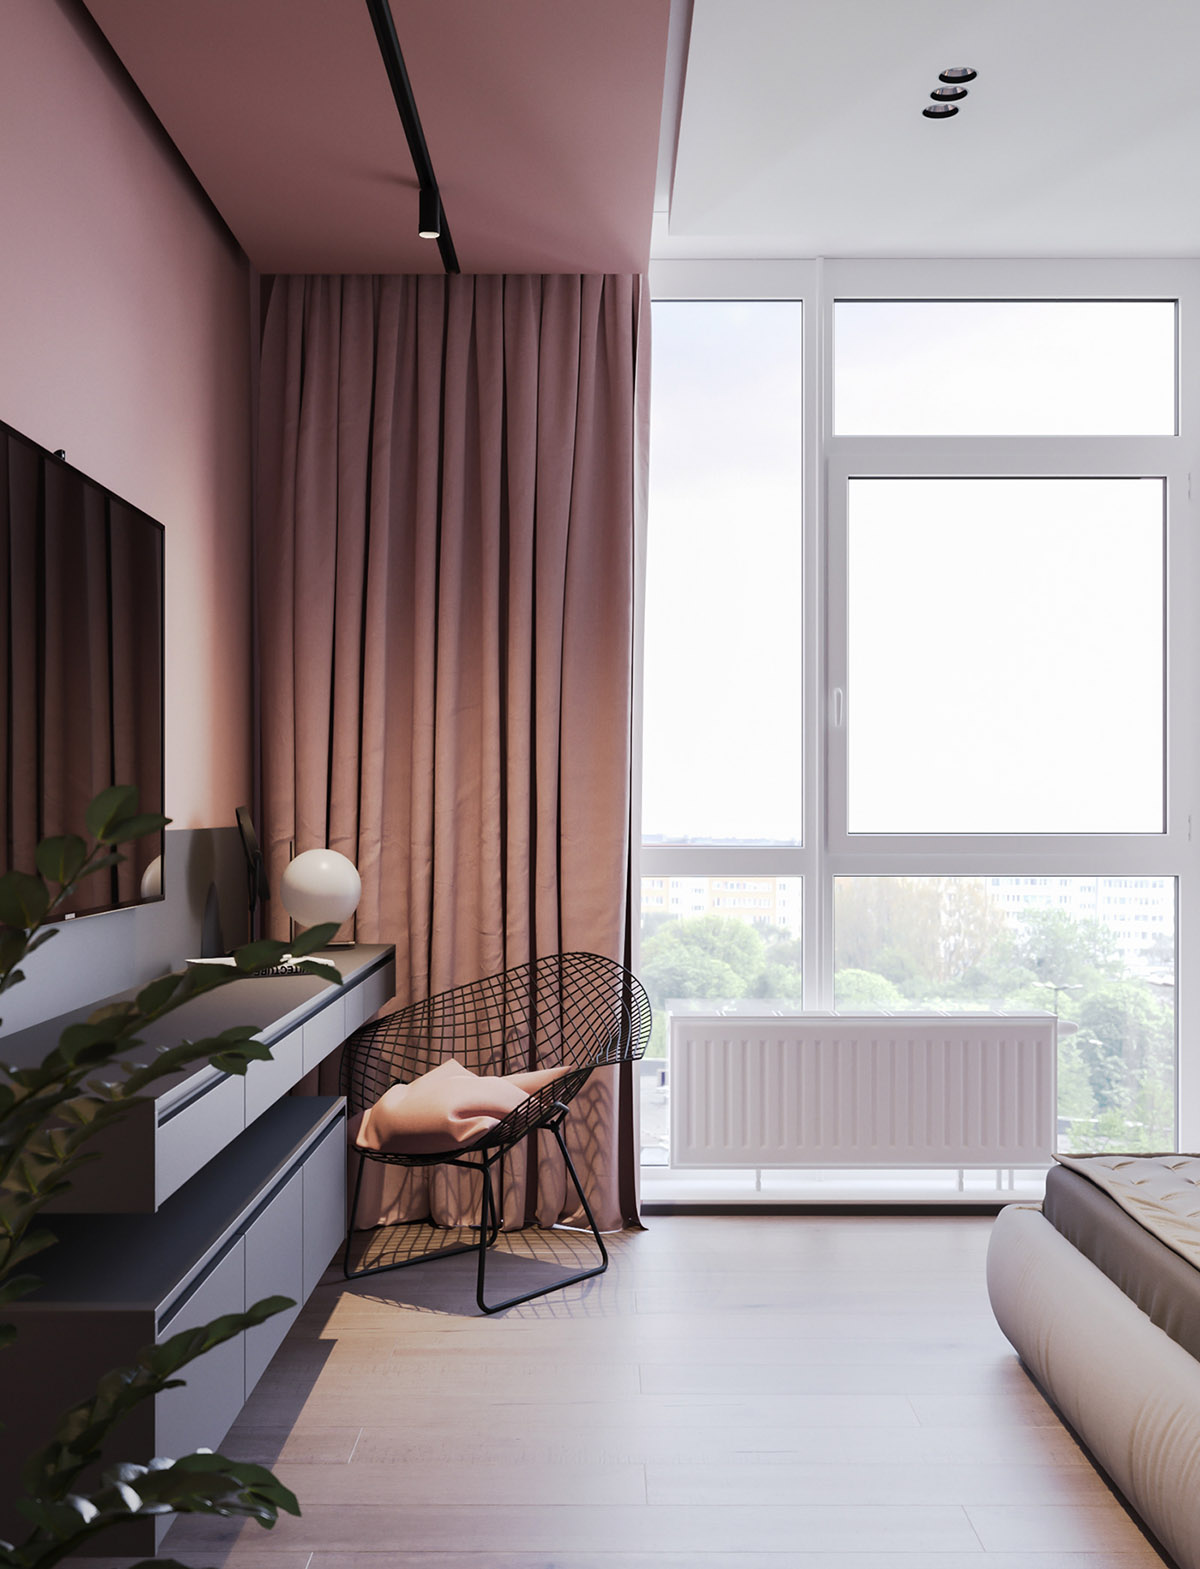 A Striking Example Of Interior Design Using Pink And Grey images 11